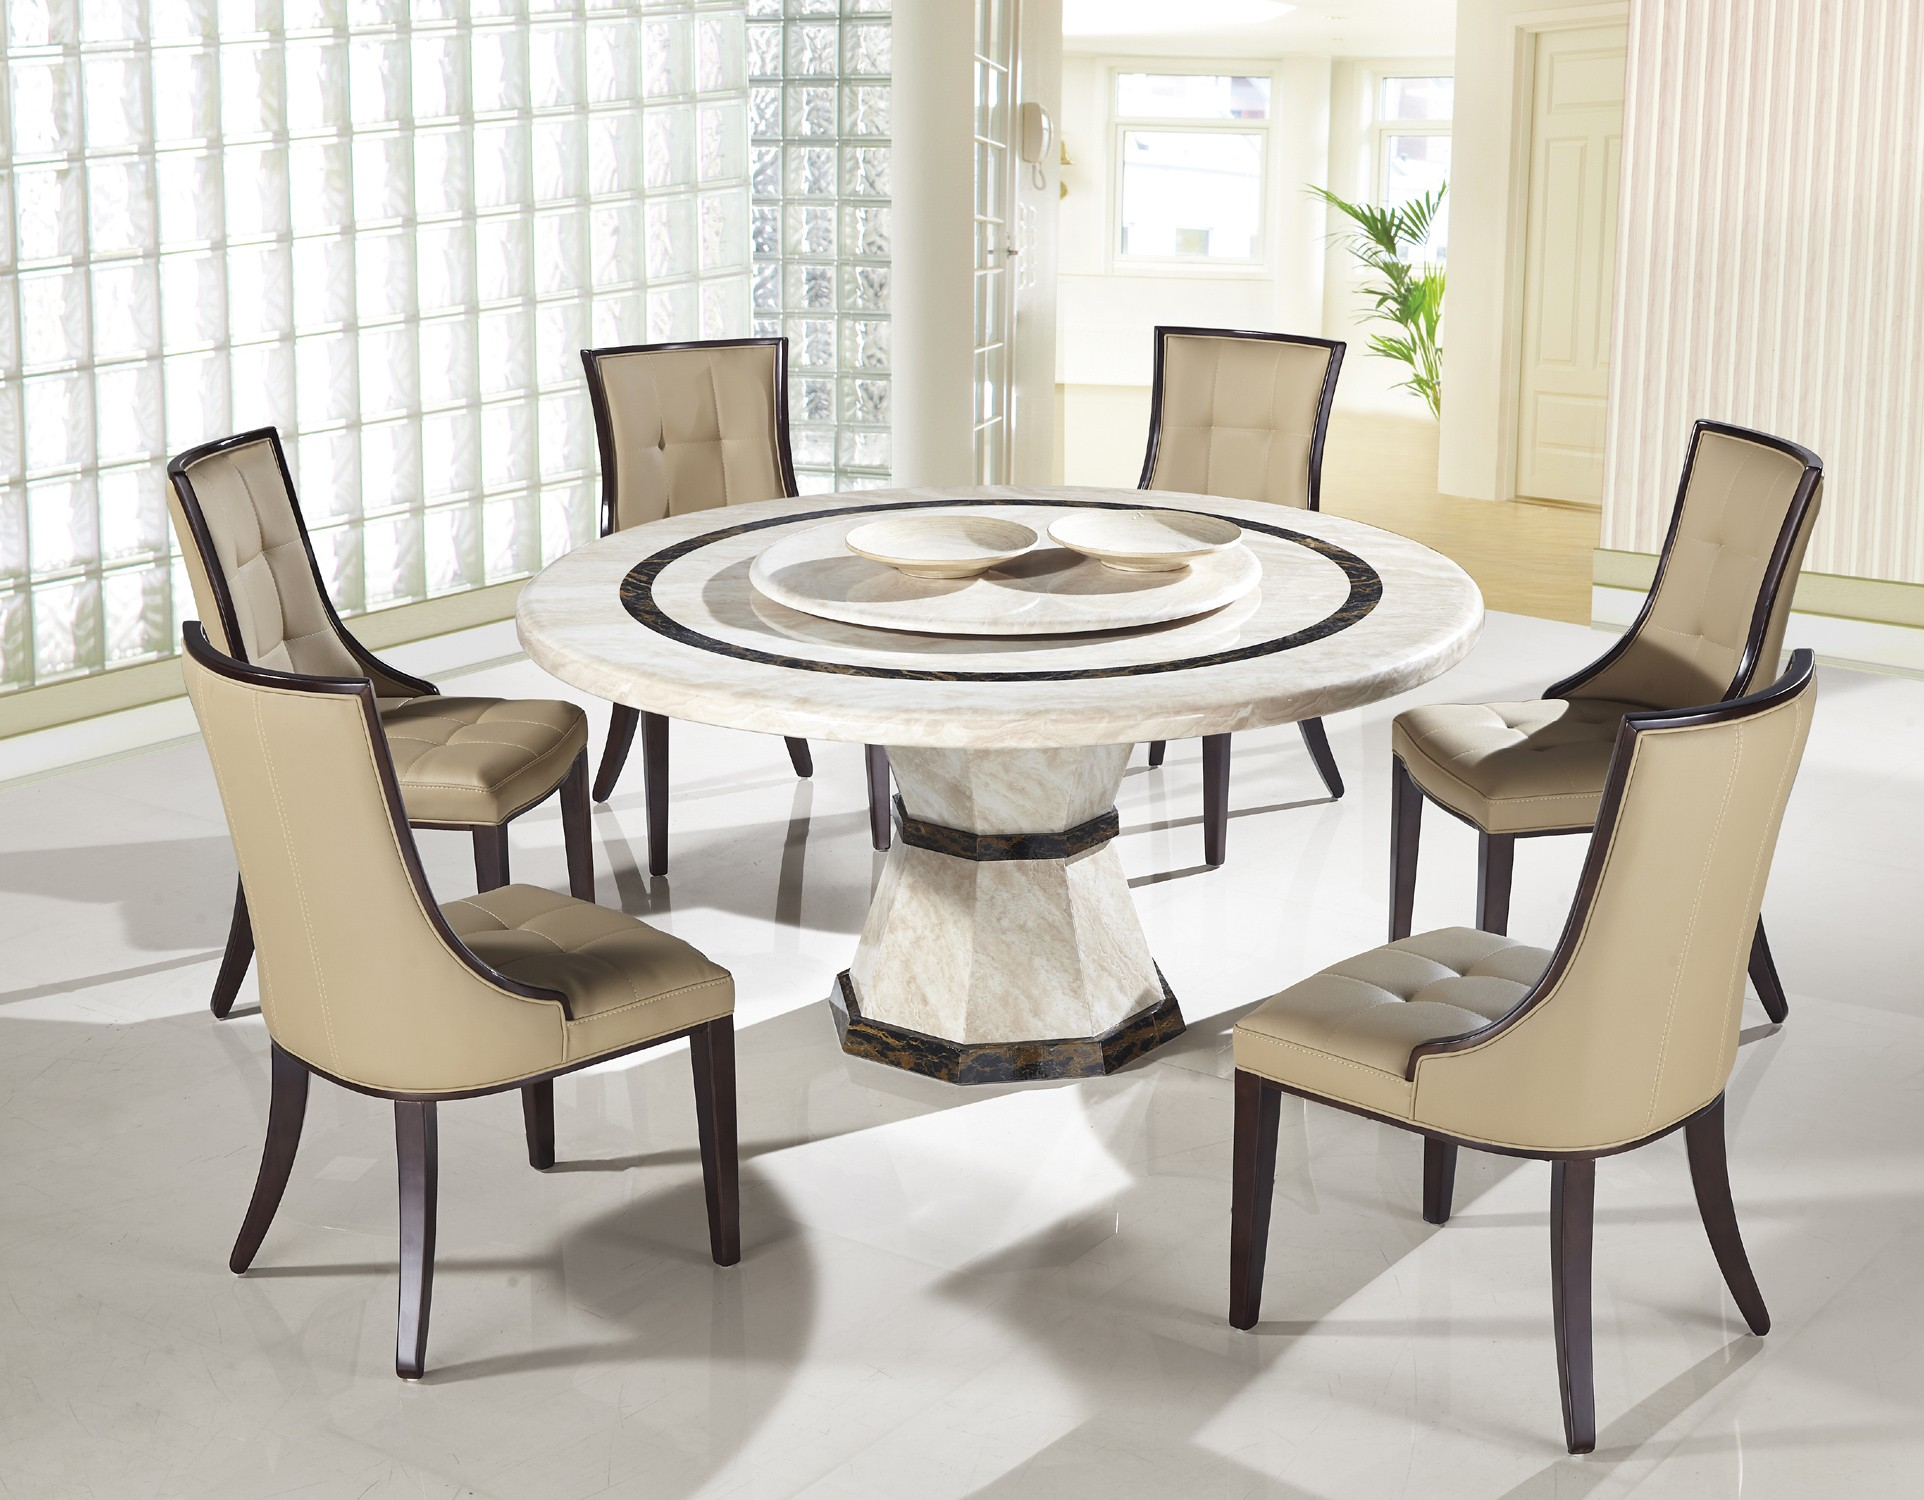 round dining chairs industrial room modern set shop for affordable home furniture decor